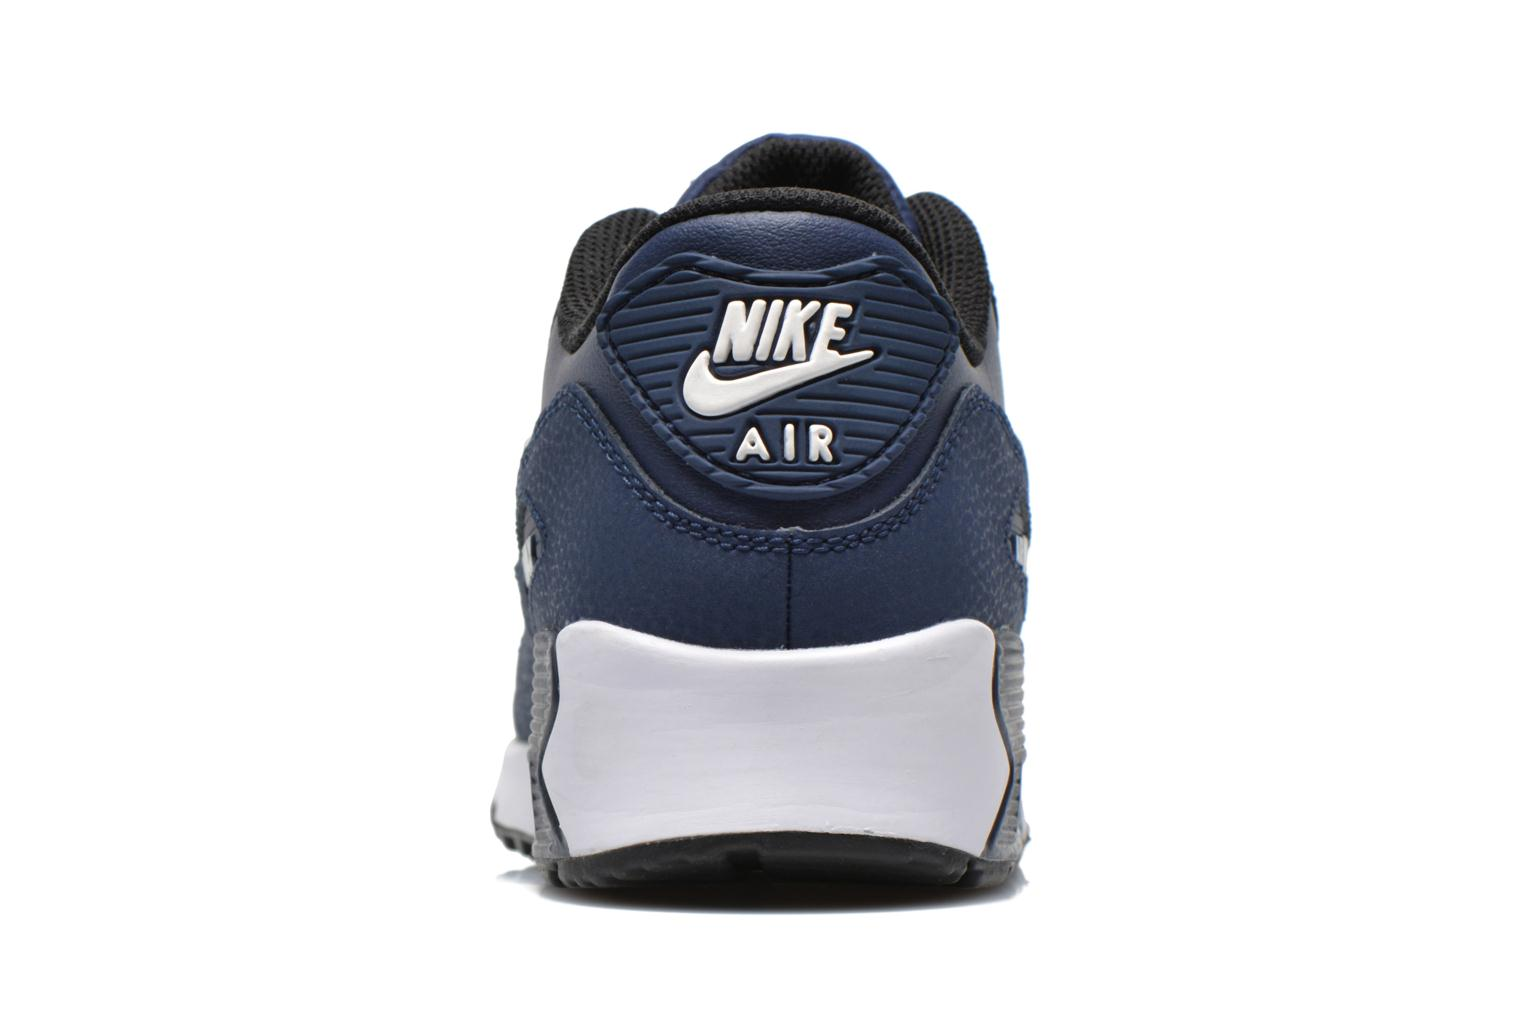 Obsidian/Navy-White Nike Nike Air Max 90 Ltr (Ps) (Bleu)